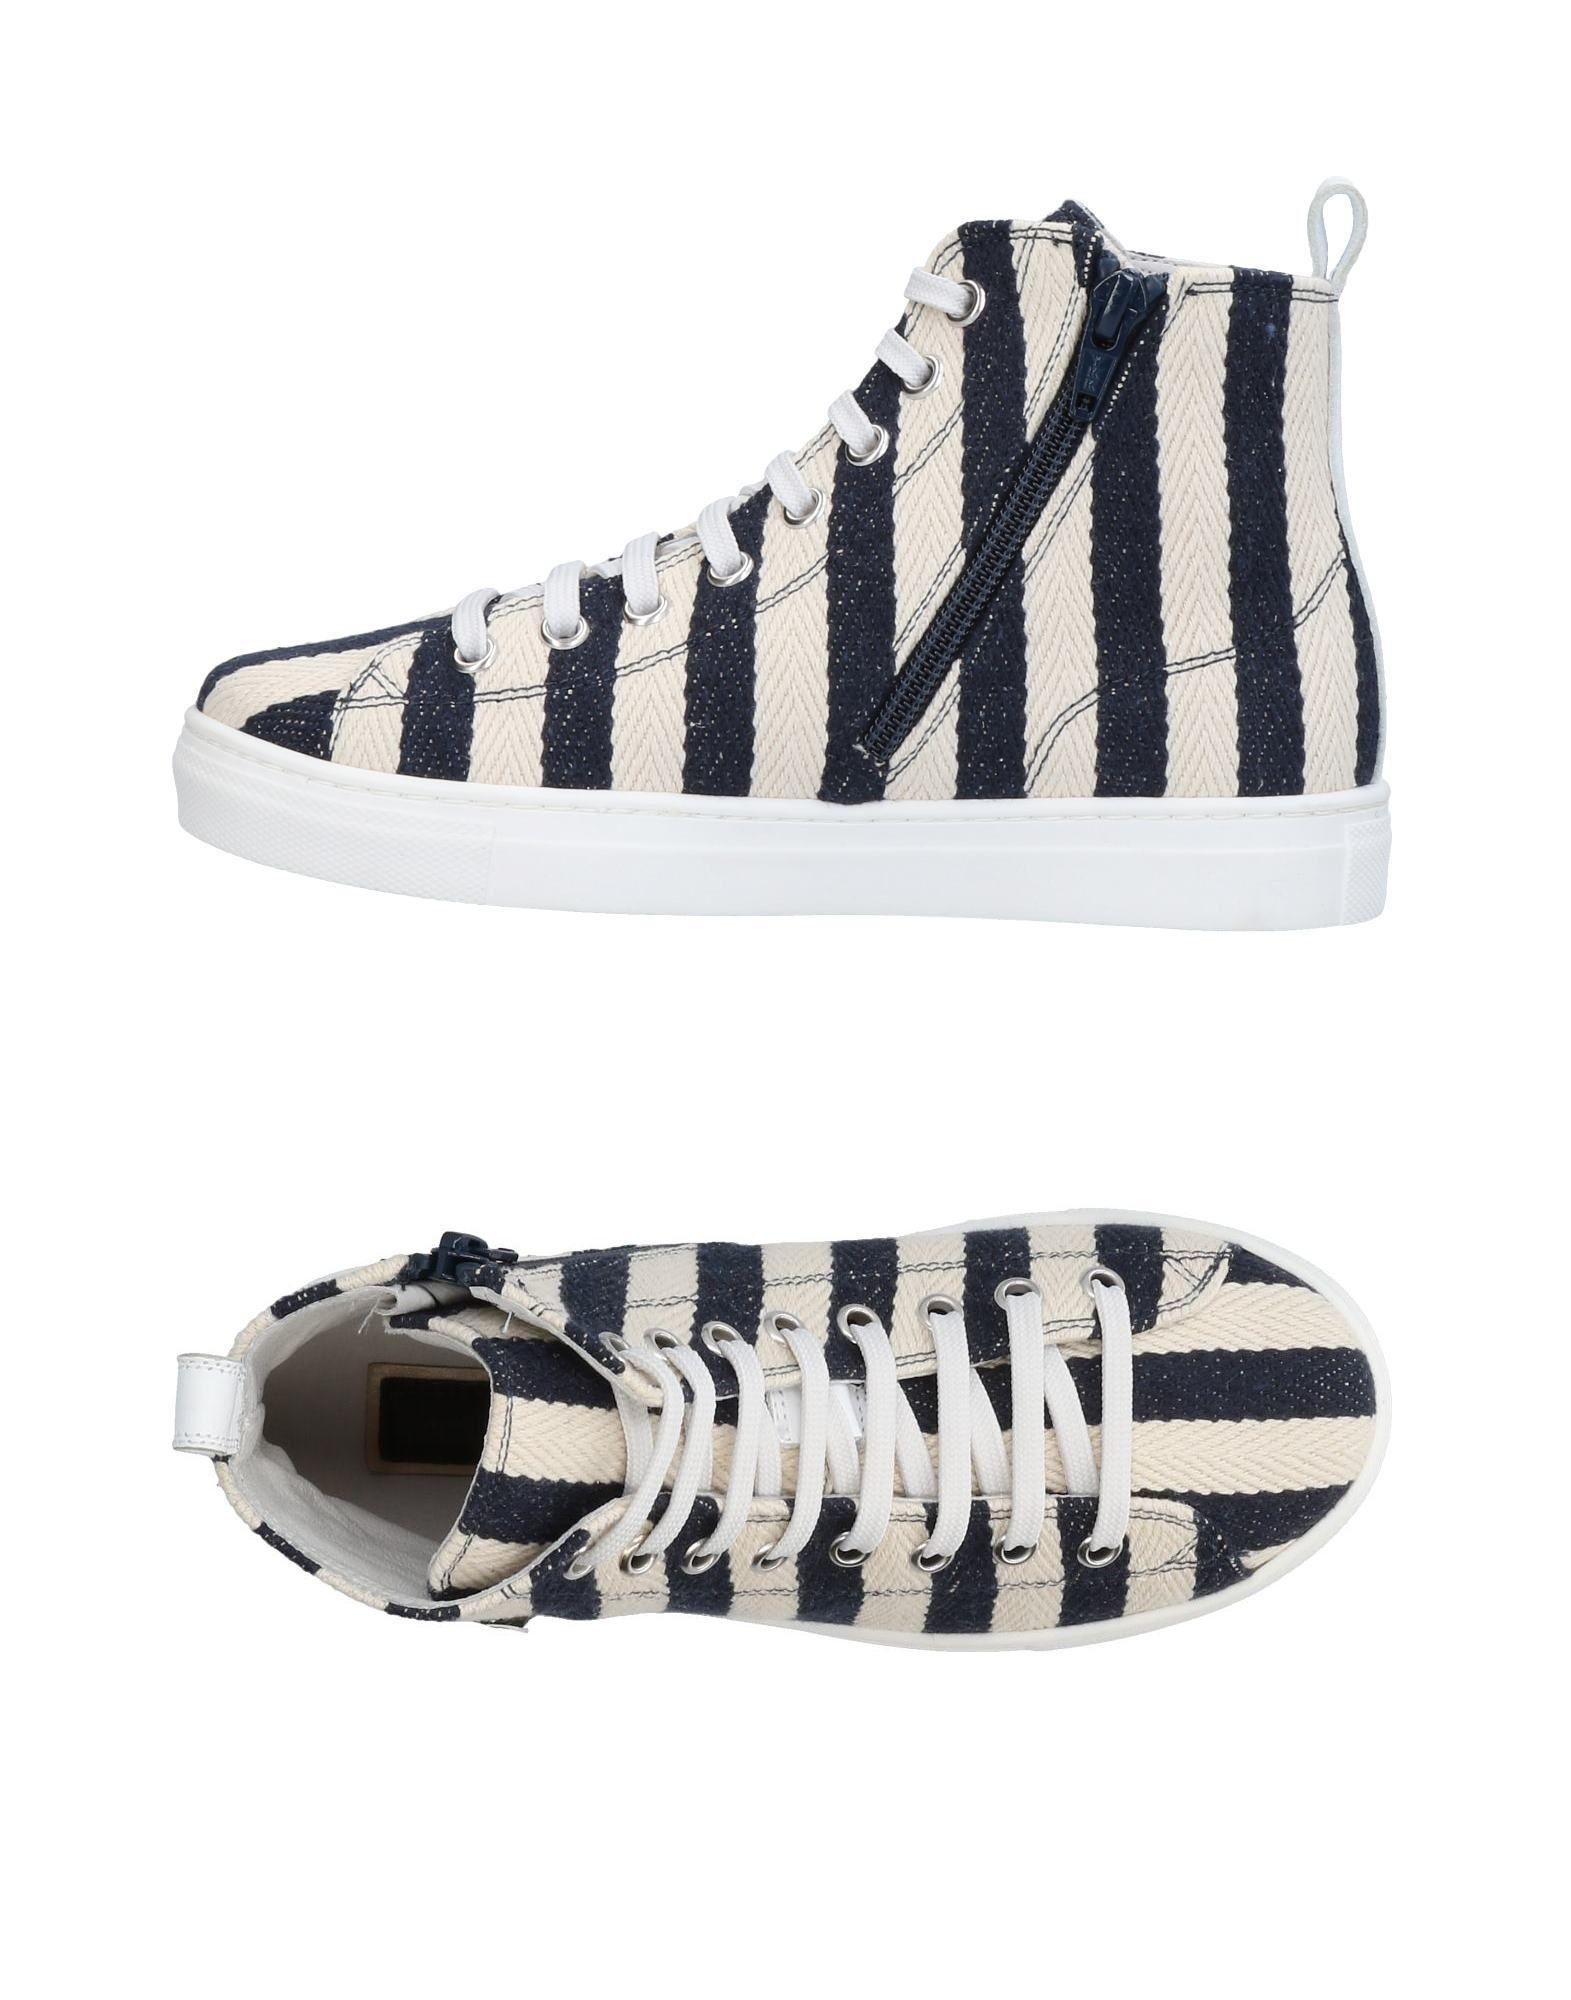 Shopping Online High Quality FOOTWEAR - High-tops & sneakers N°21 Hot Sale Cheap Price Outlet Largest Supplier Sast Perfect PQTXyfL6